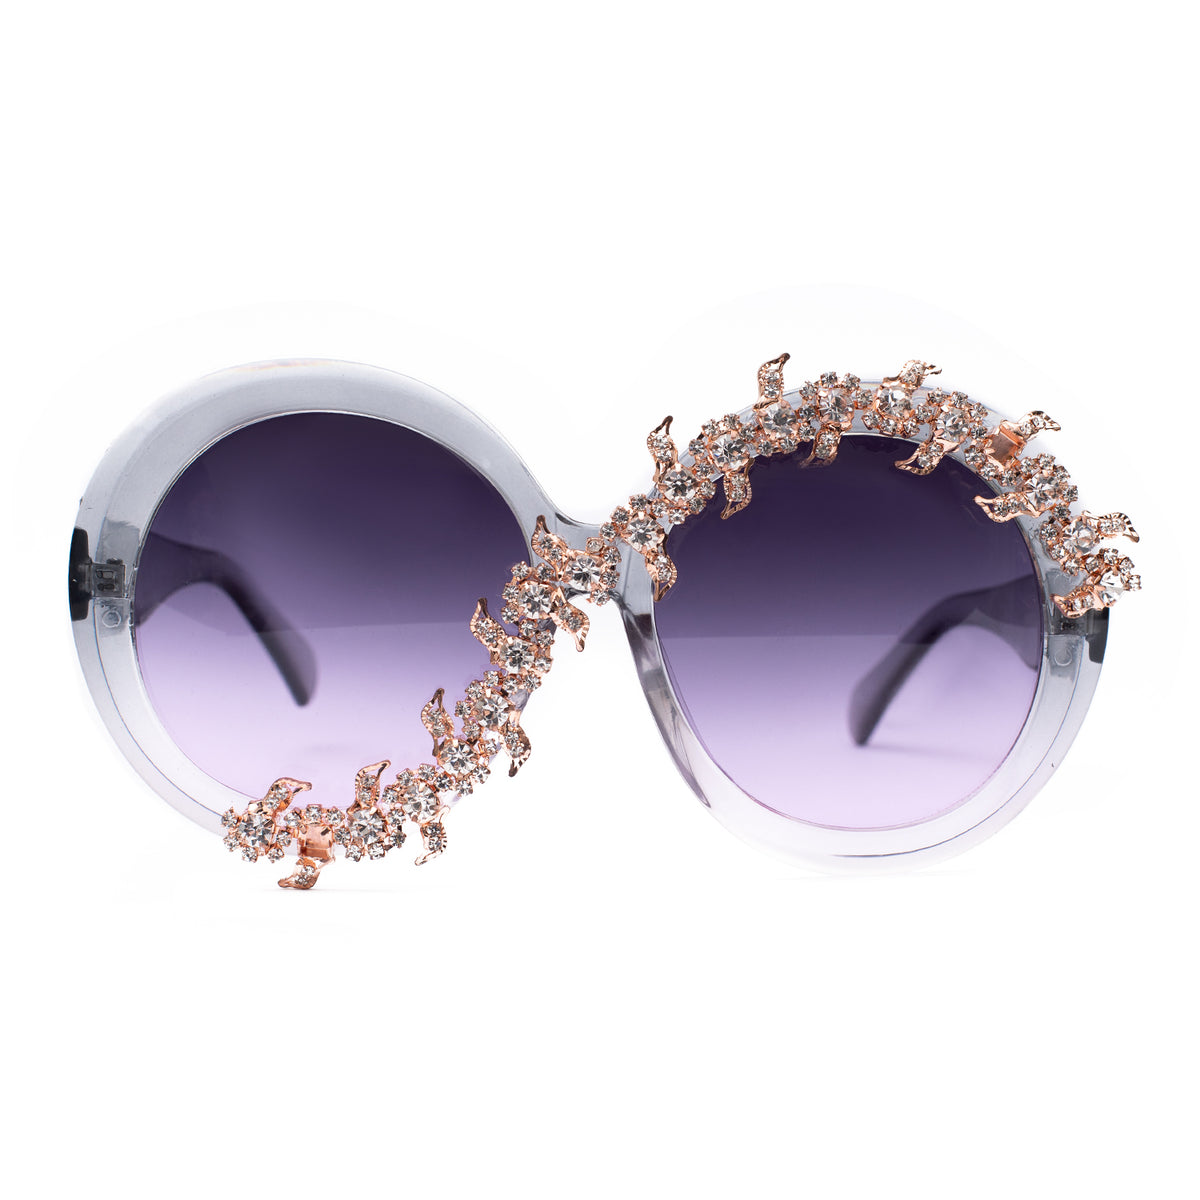 City of lights Ice gray glitz SUNNIES + OPTICS Sunglasses Collection- NRODA